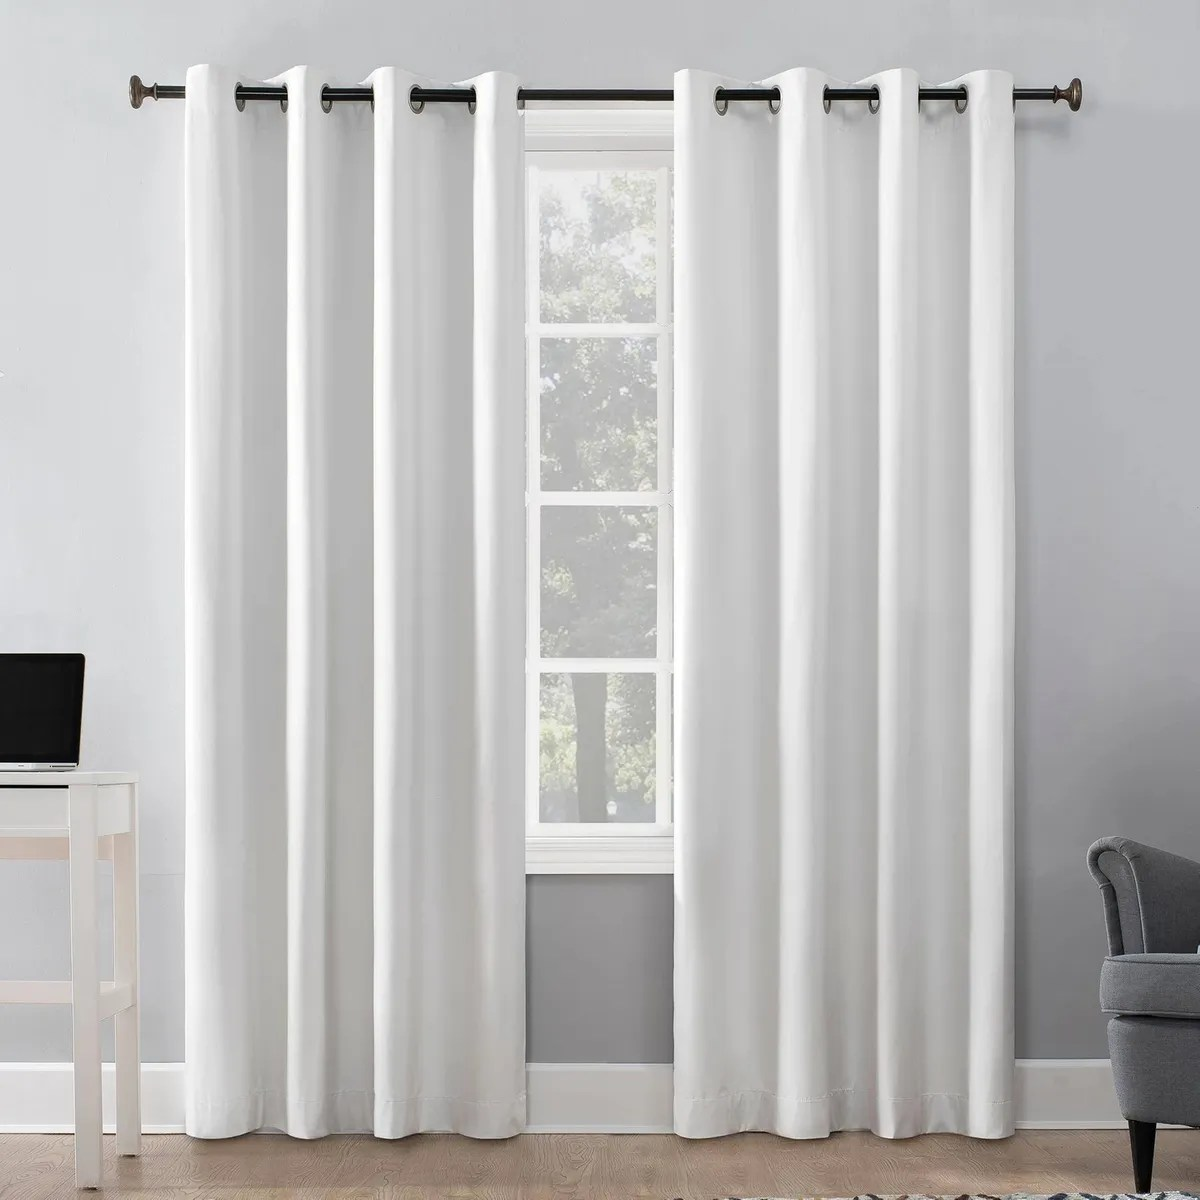 12 Best Curtains For Windows 2020 The Strategist New York Magazine